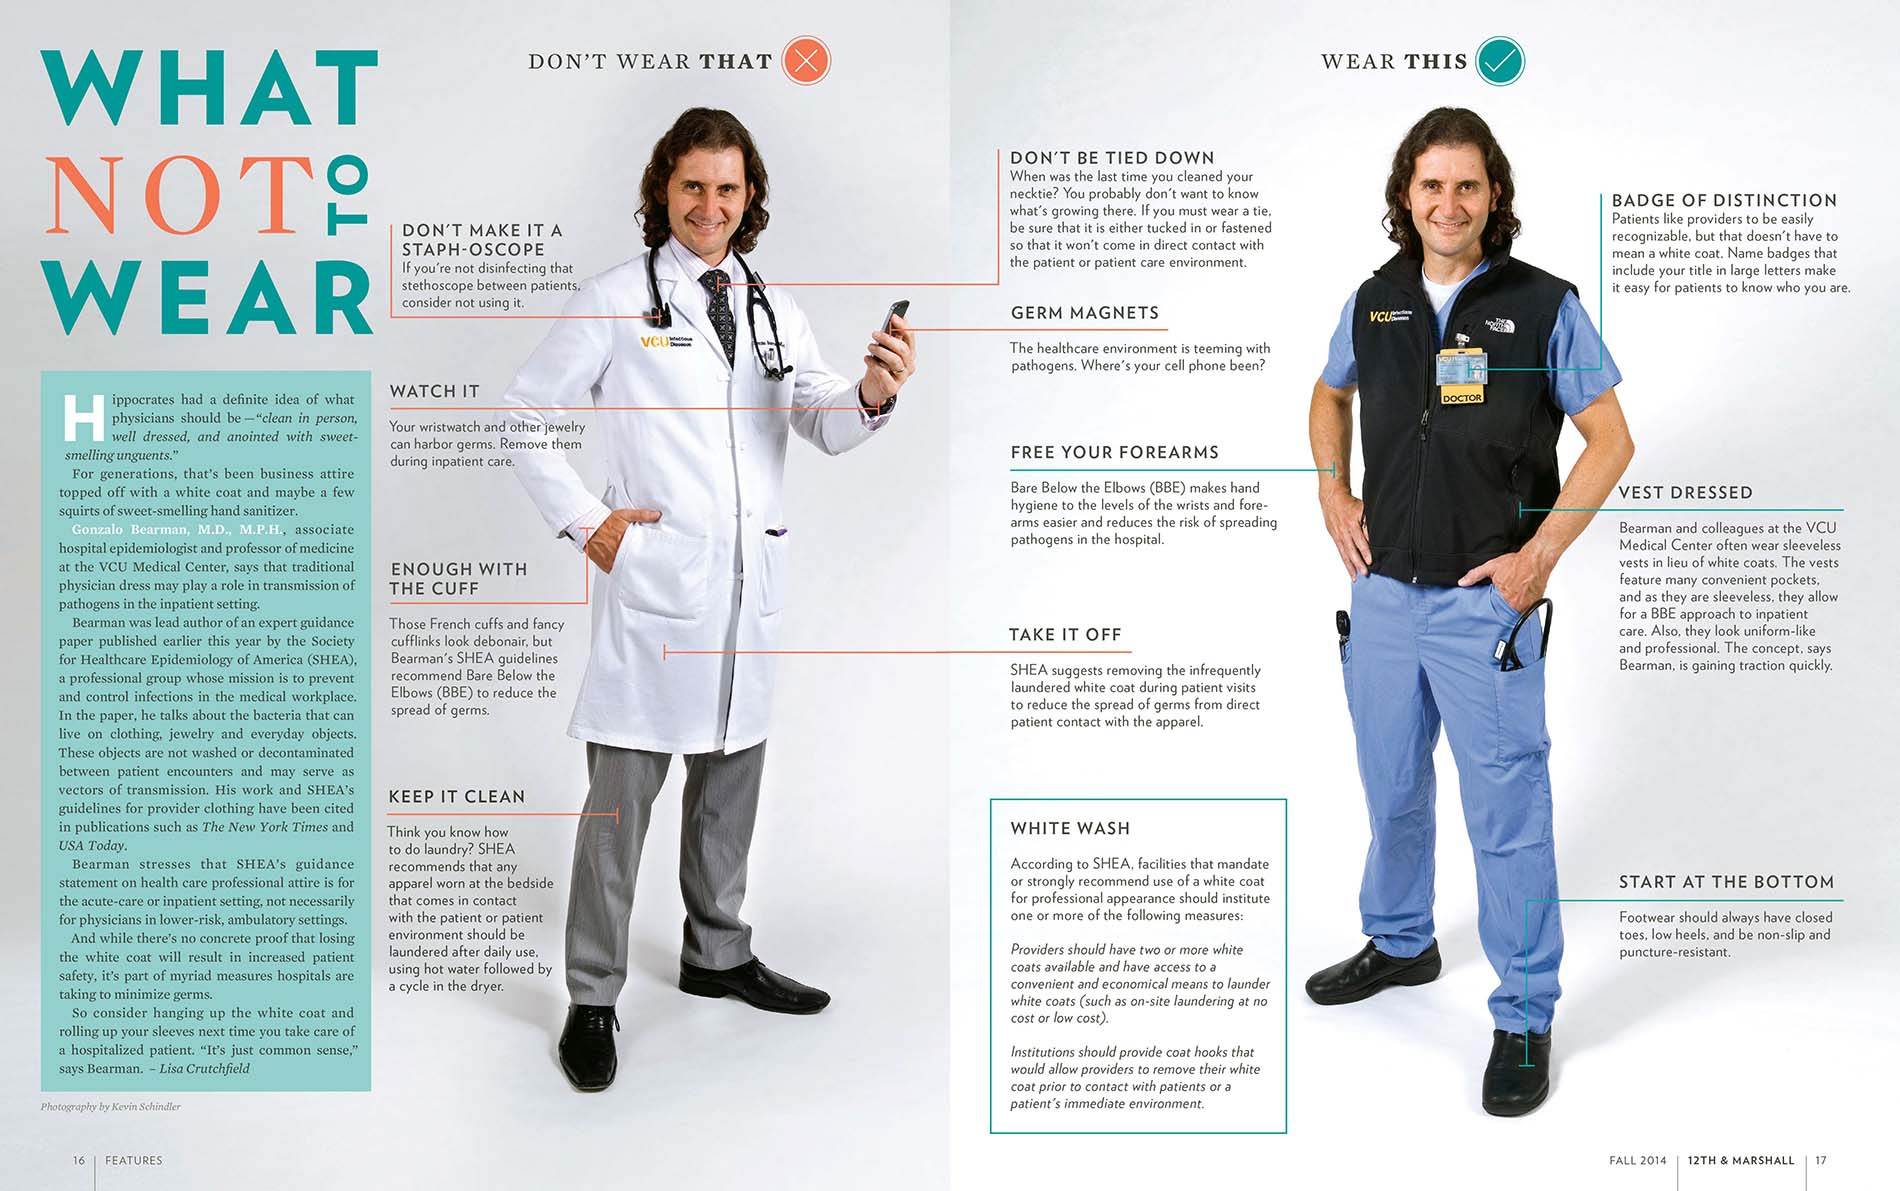 The white coat: Symbol of professionalism or hierarchical